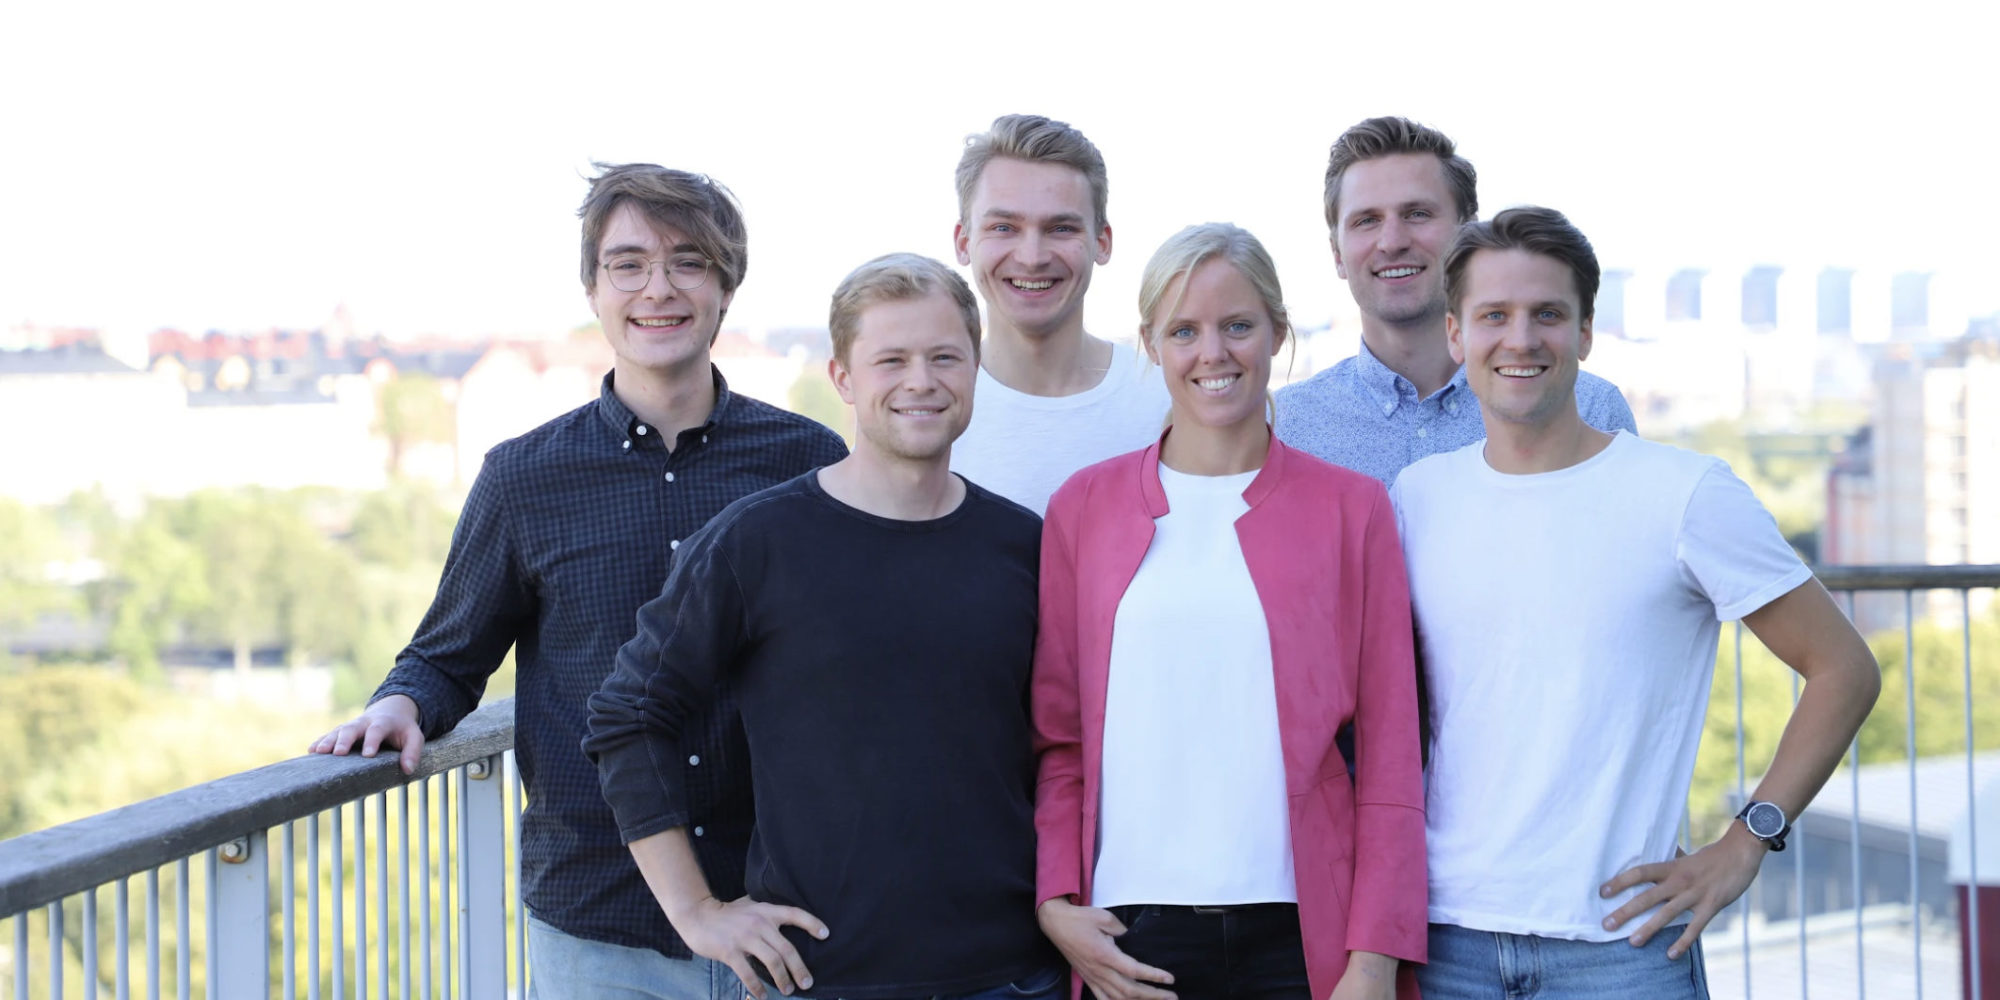 Team members, Jason, Joel, Jacob L, Felicia, Niklas and Jacob M